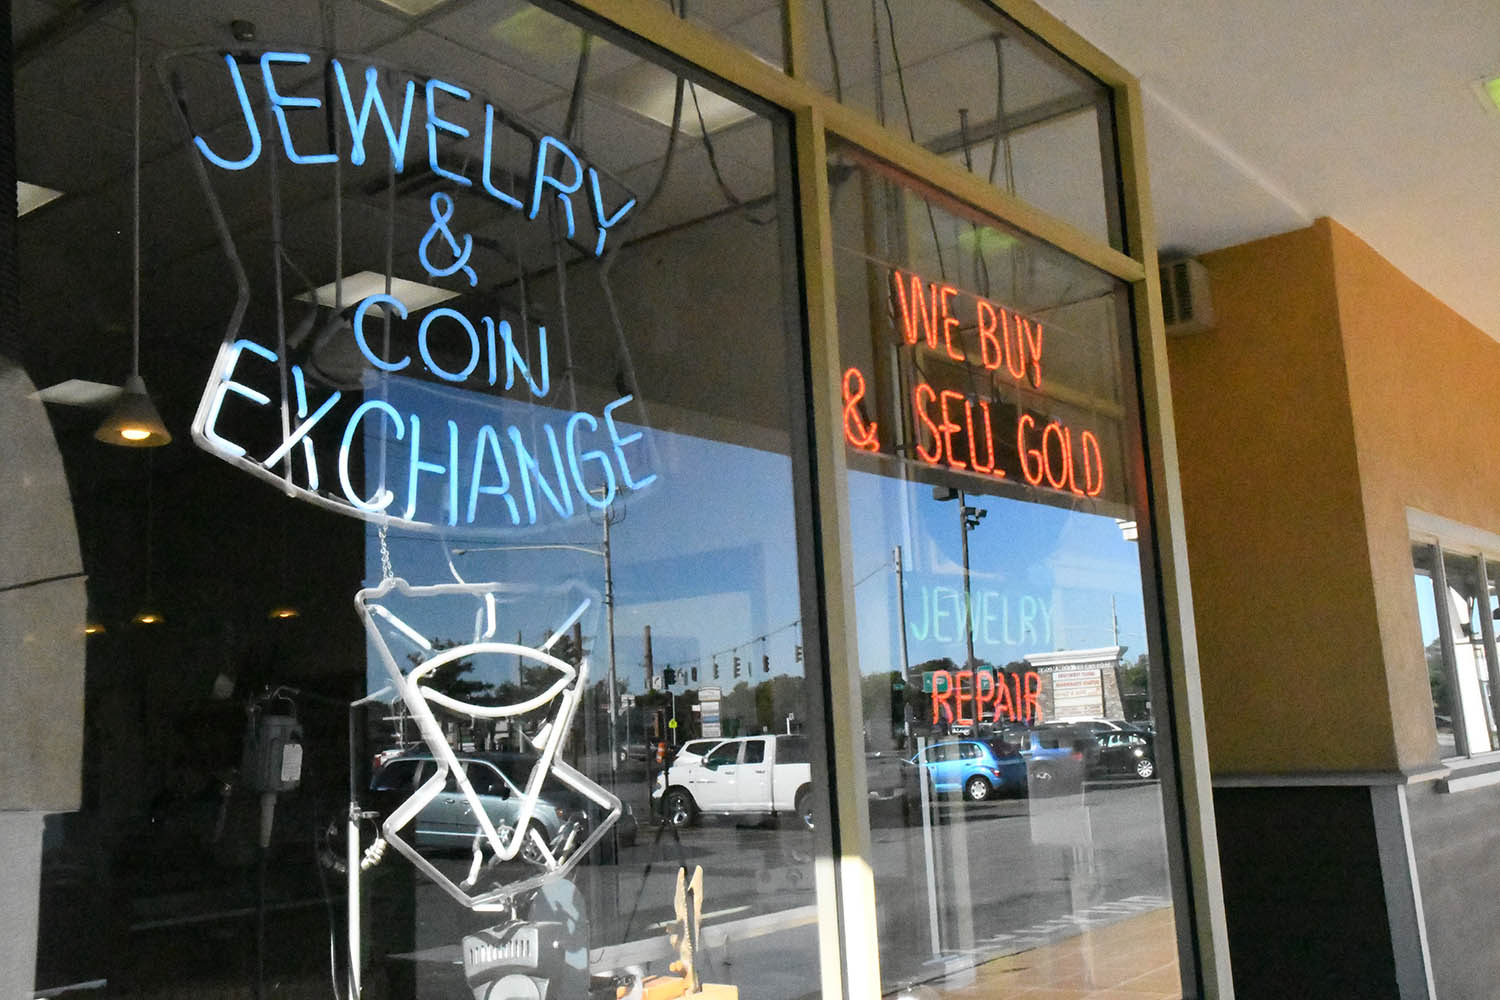 Jewelry & Coin Exchange Storefront